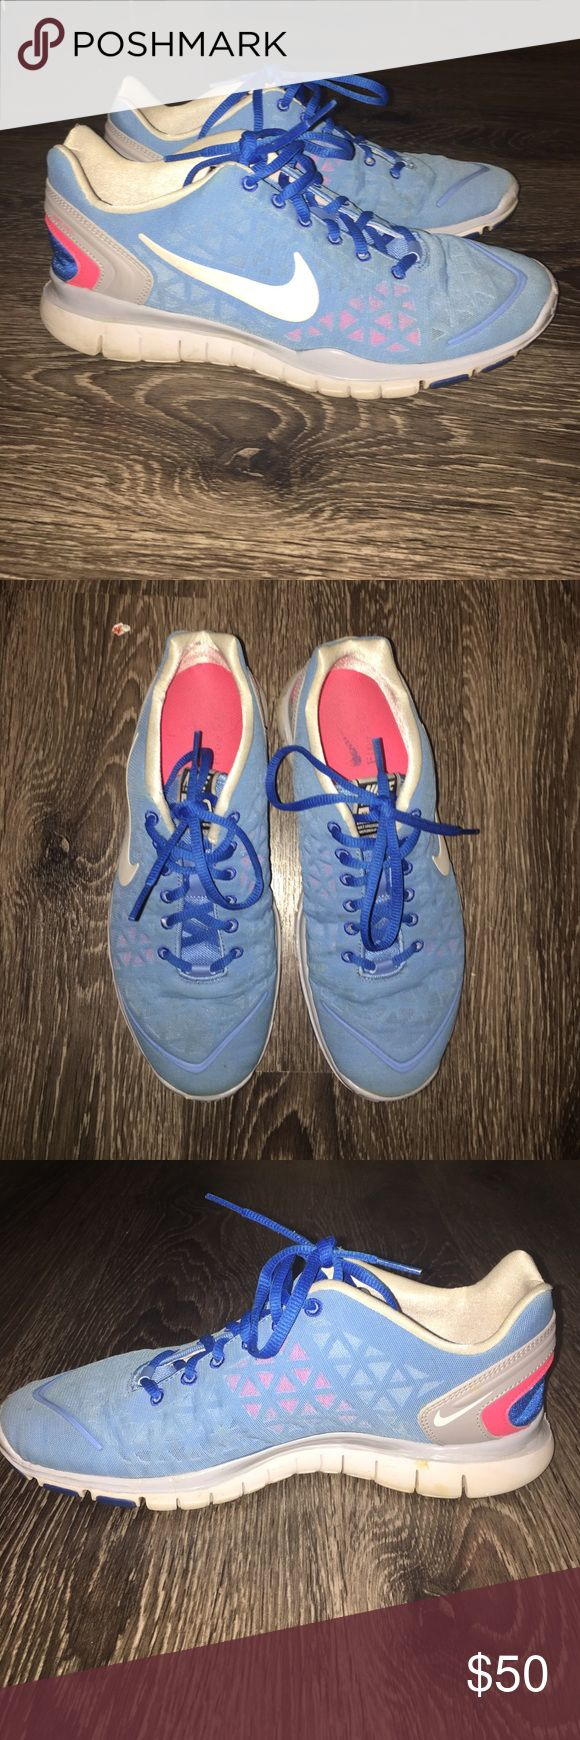 Nike Training Free Fit 2 Size 9.5, gently worn. I love these shoes but they're a little too big for me to wear without my foot sliding around. Very comfortable besides that! Nike Shoes Athletic Shoes